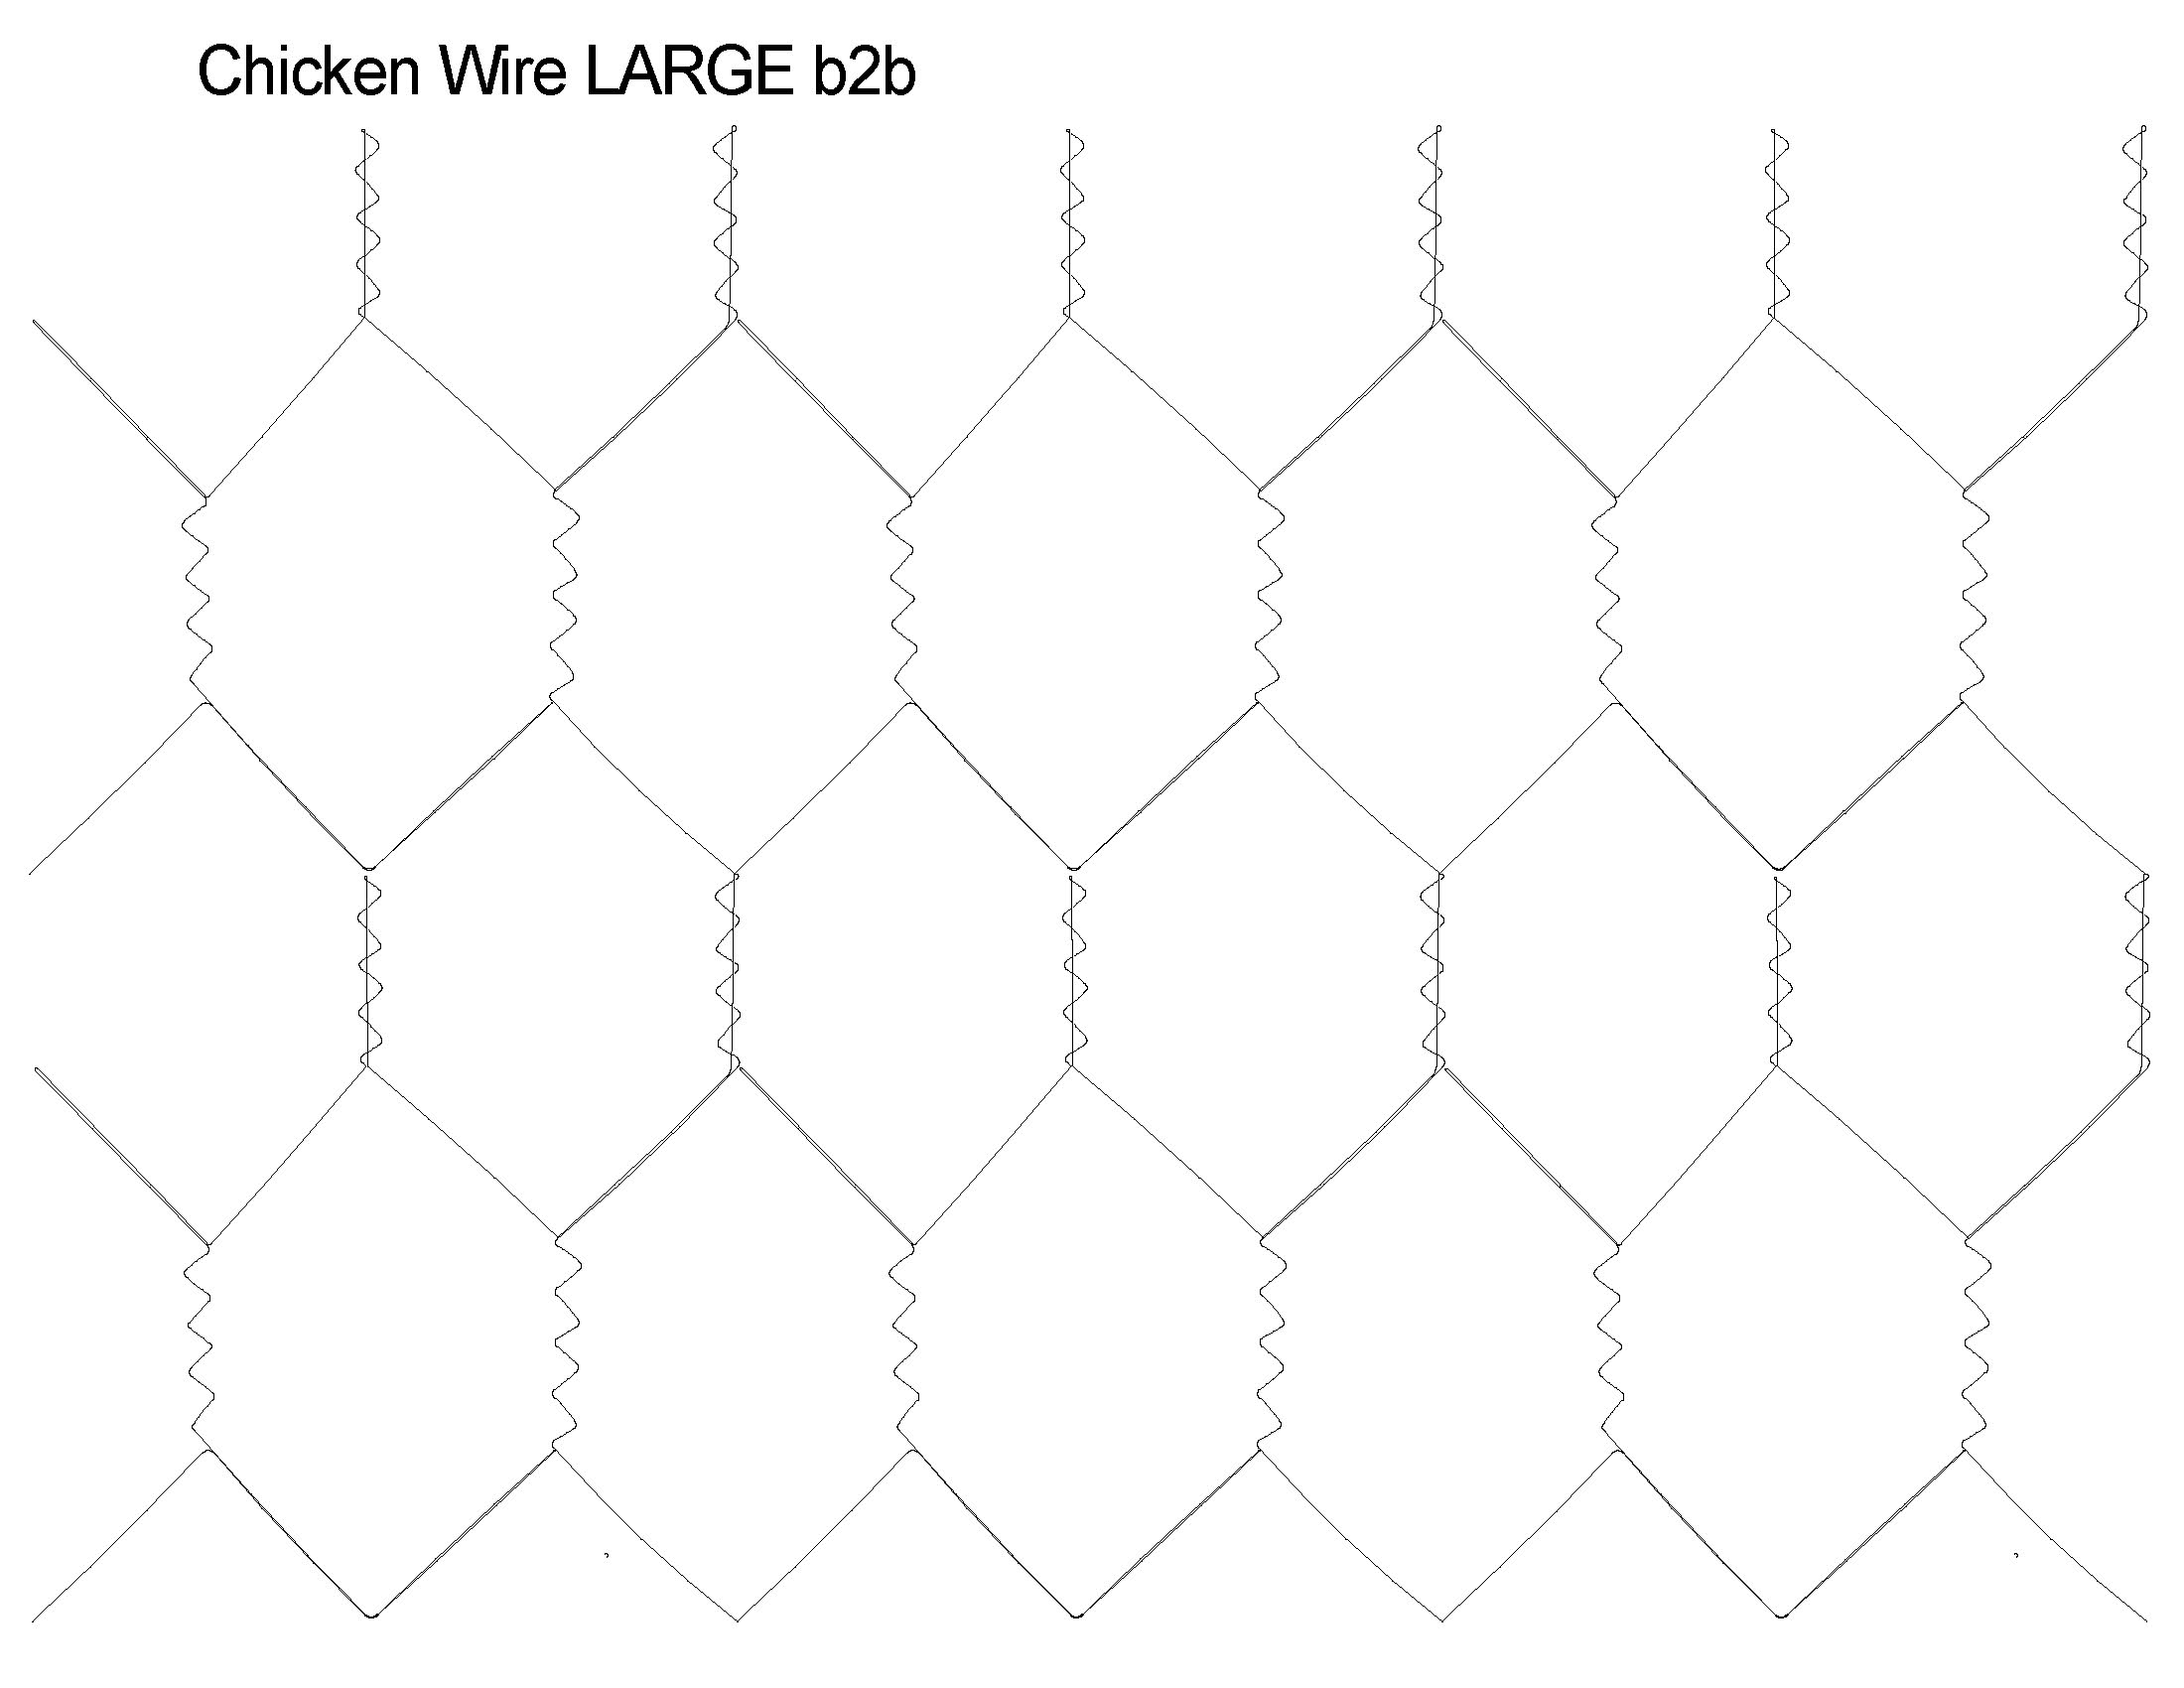 Chicken Wire Large b2b